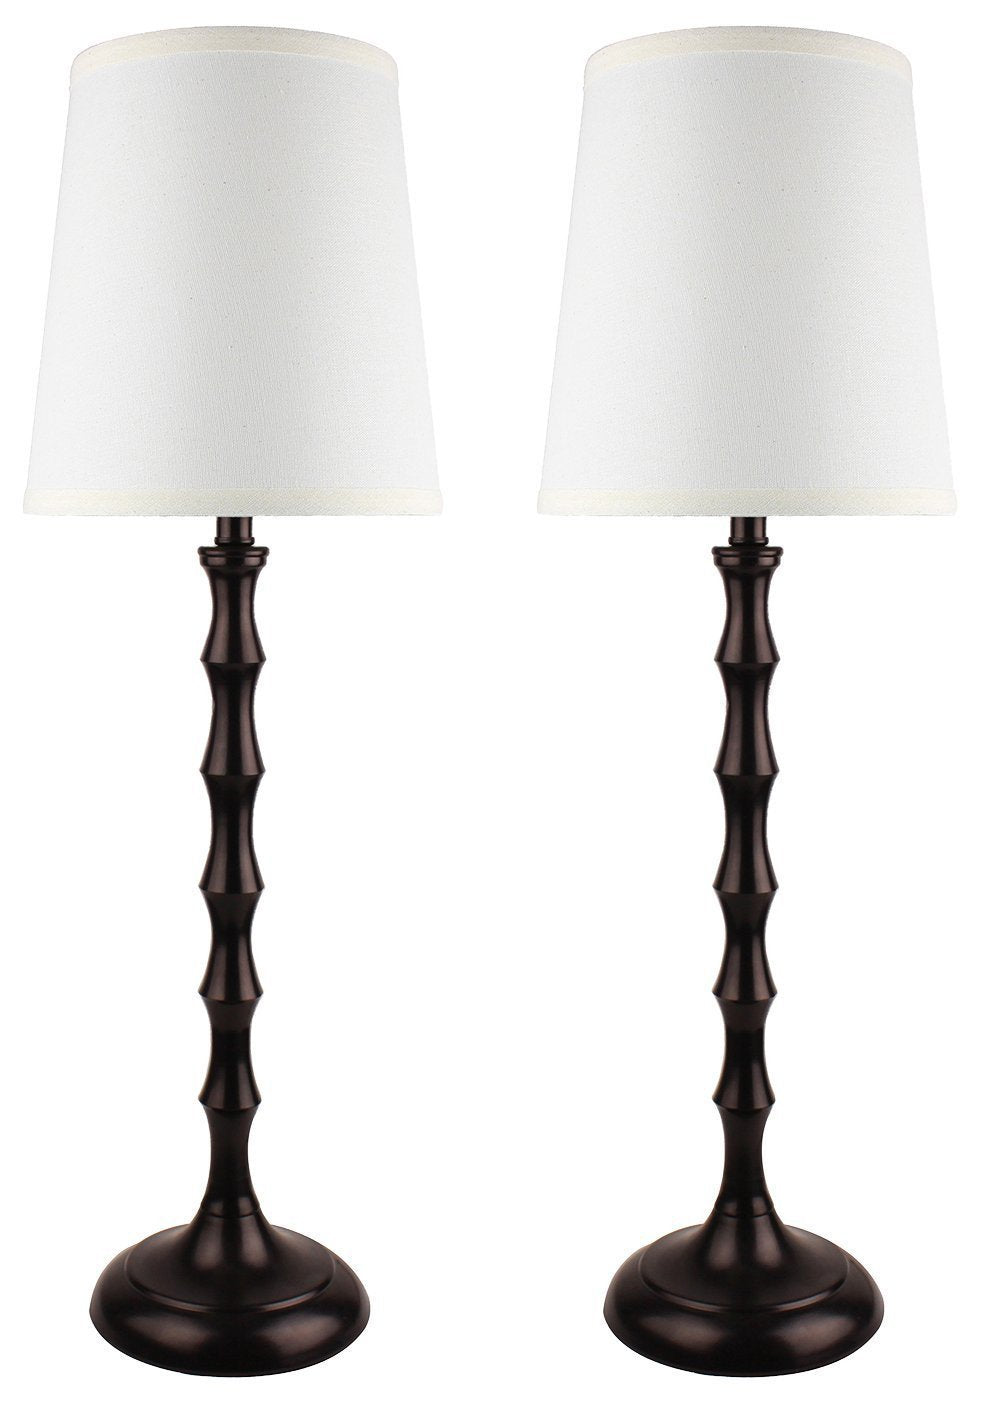 Set Of 2 Bahama Bamboo Buffet Lamps, 26 Inch Tall